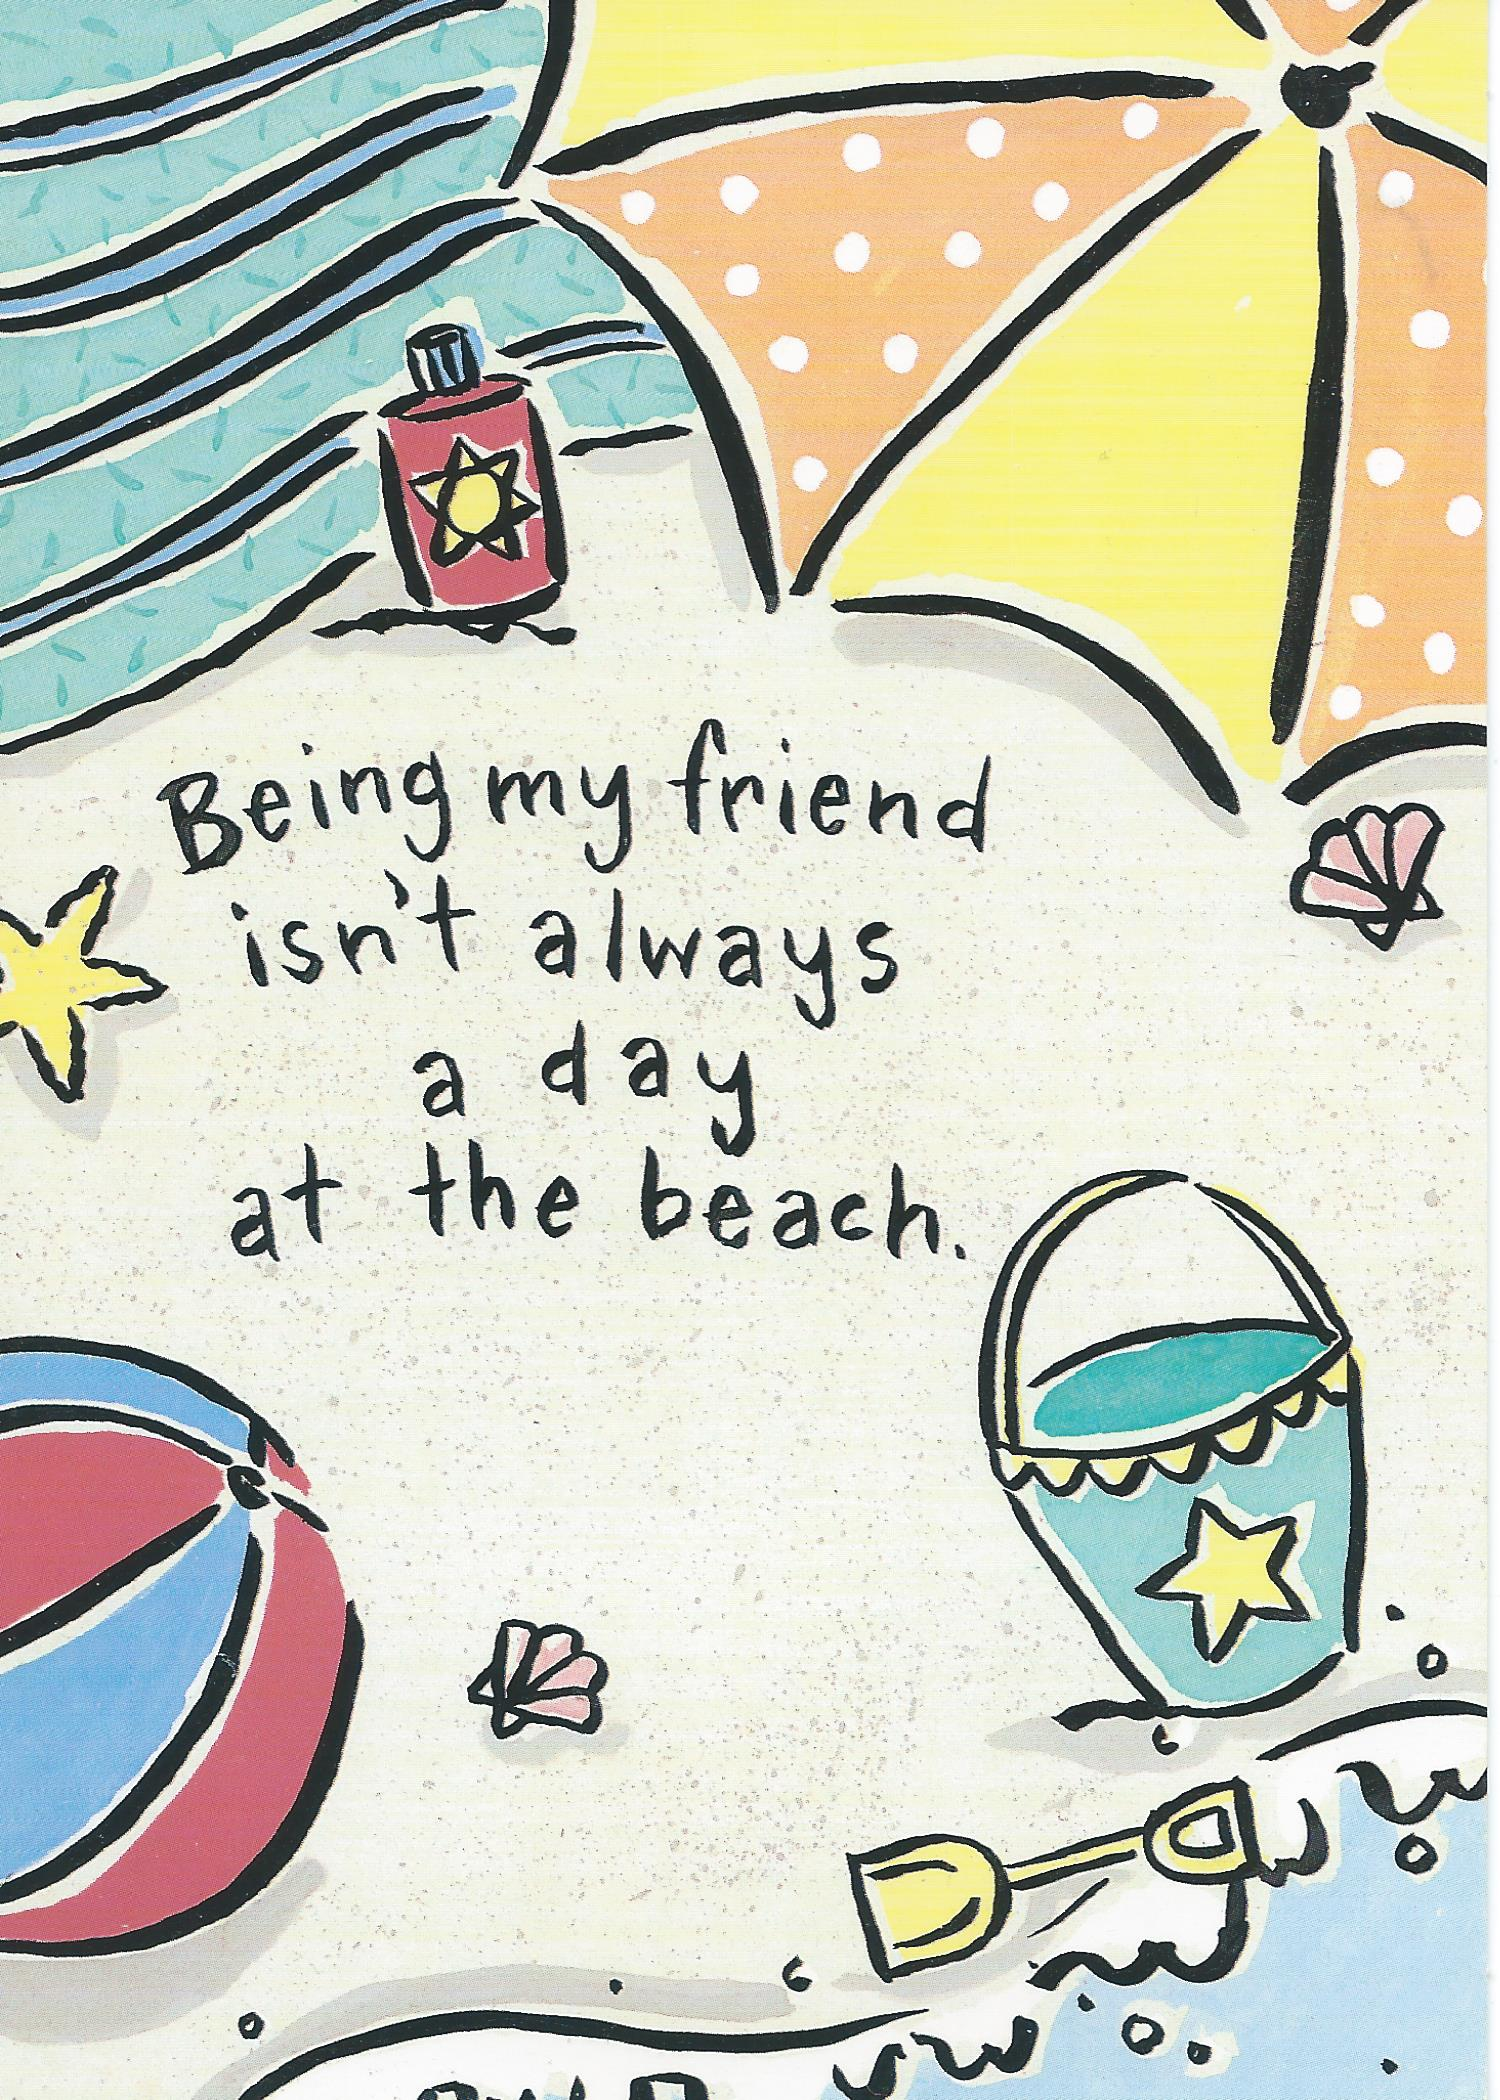 Being my friend isn't always a day at the beach.